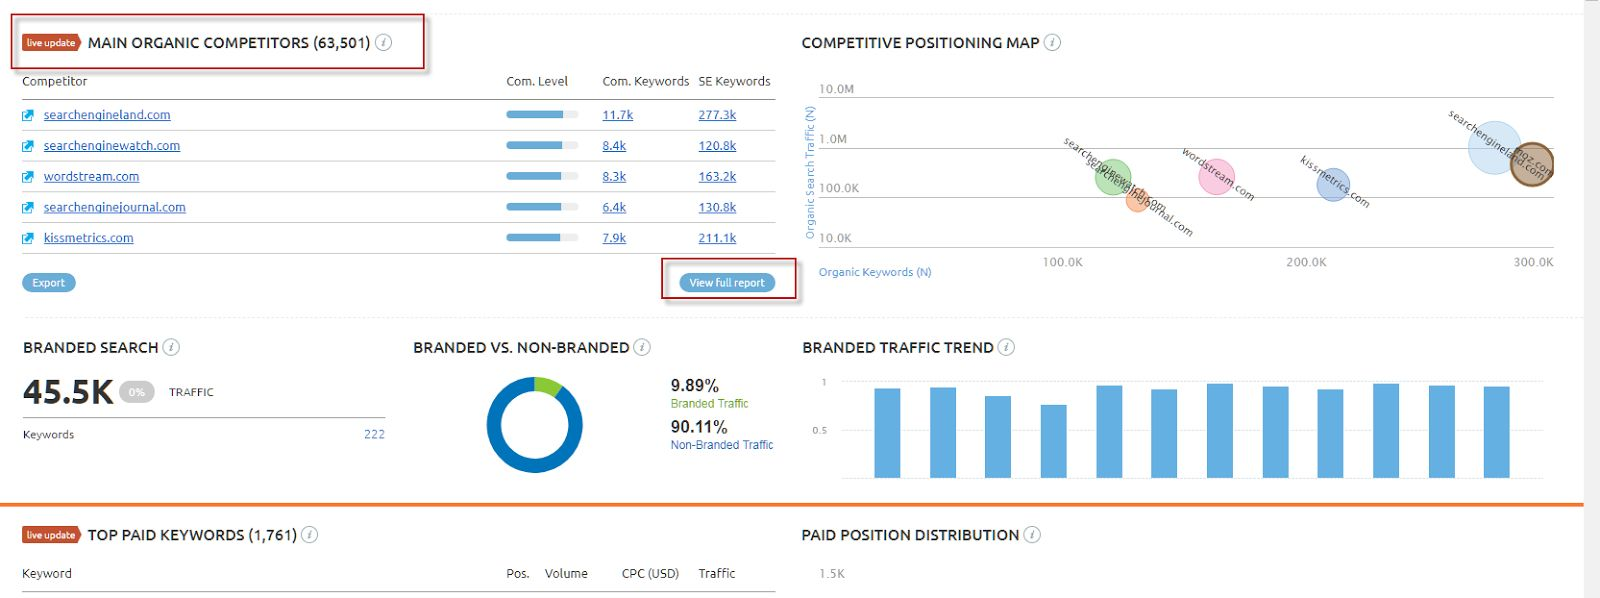 How To Do An Seo Competitive Analysis Free Template Included Moz With Regard To Network Analysis Report T Competitor Analysis Competitive Analysis Seo Analysis